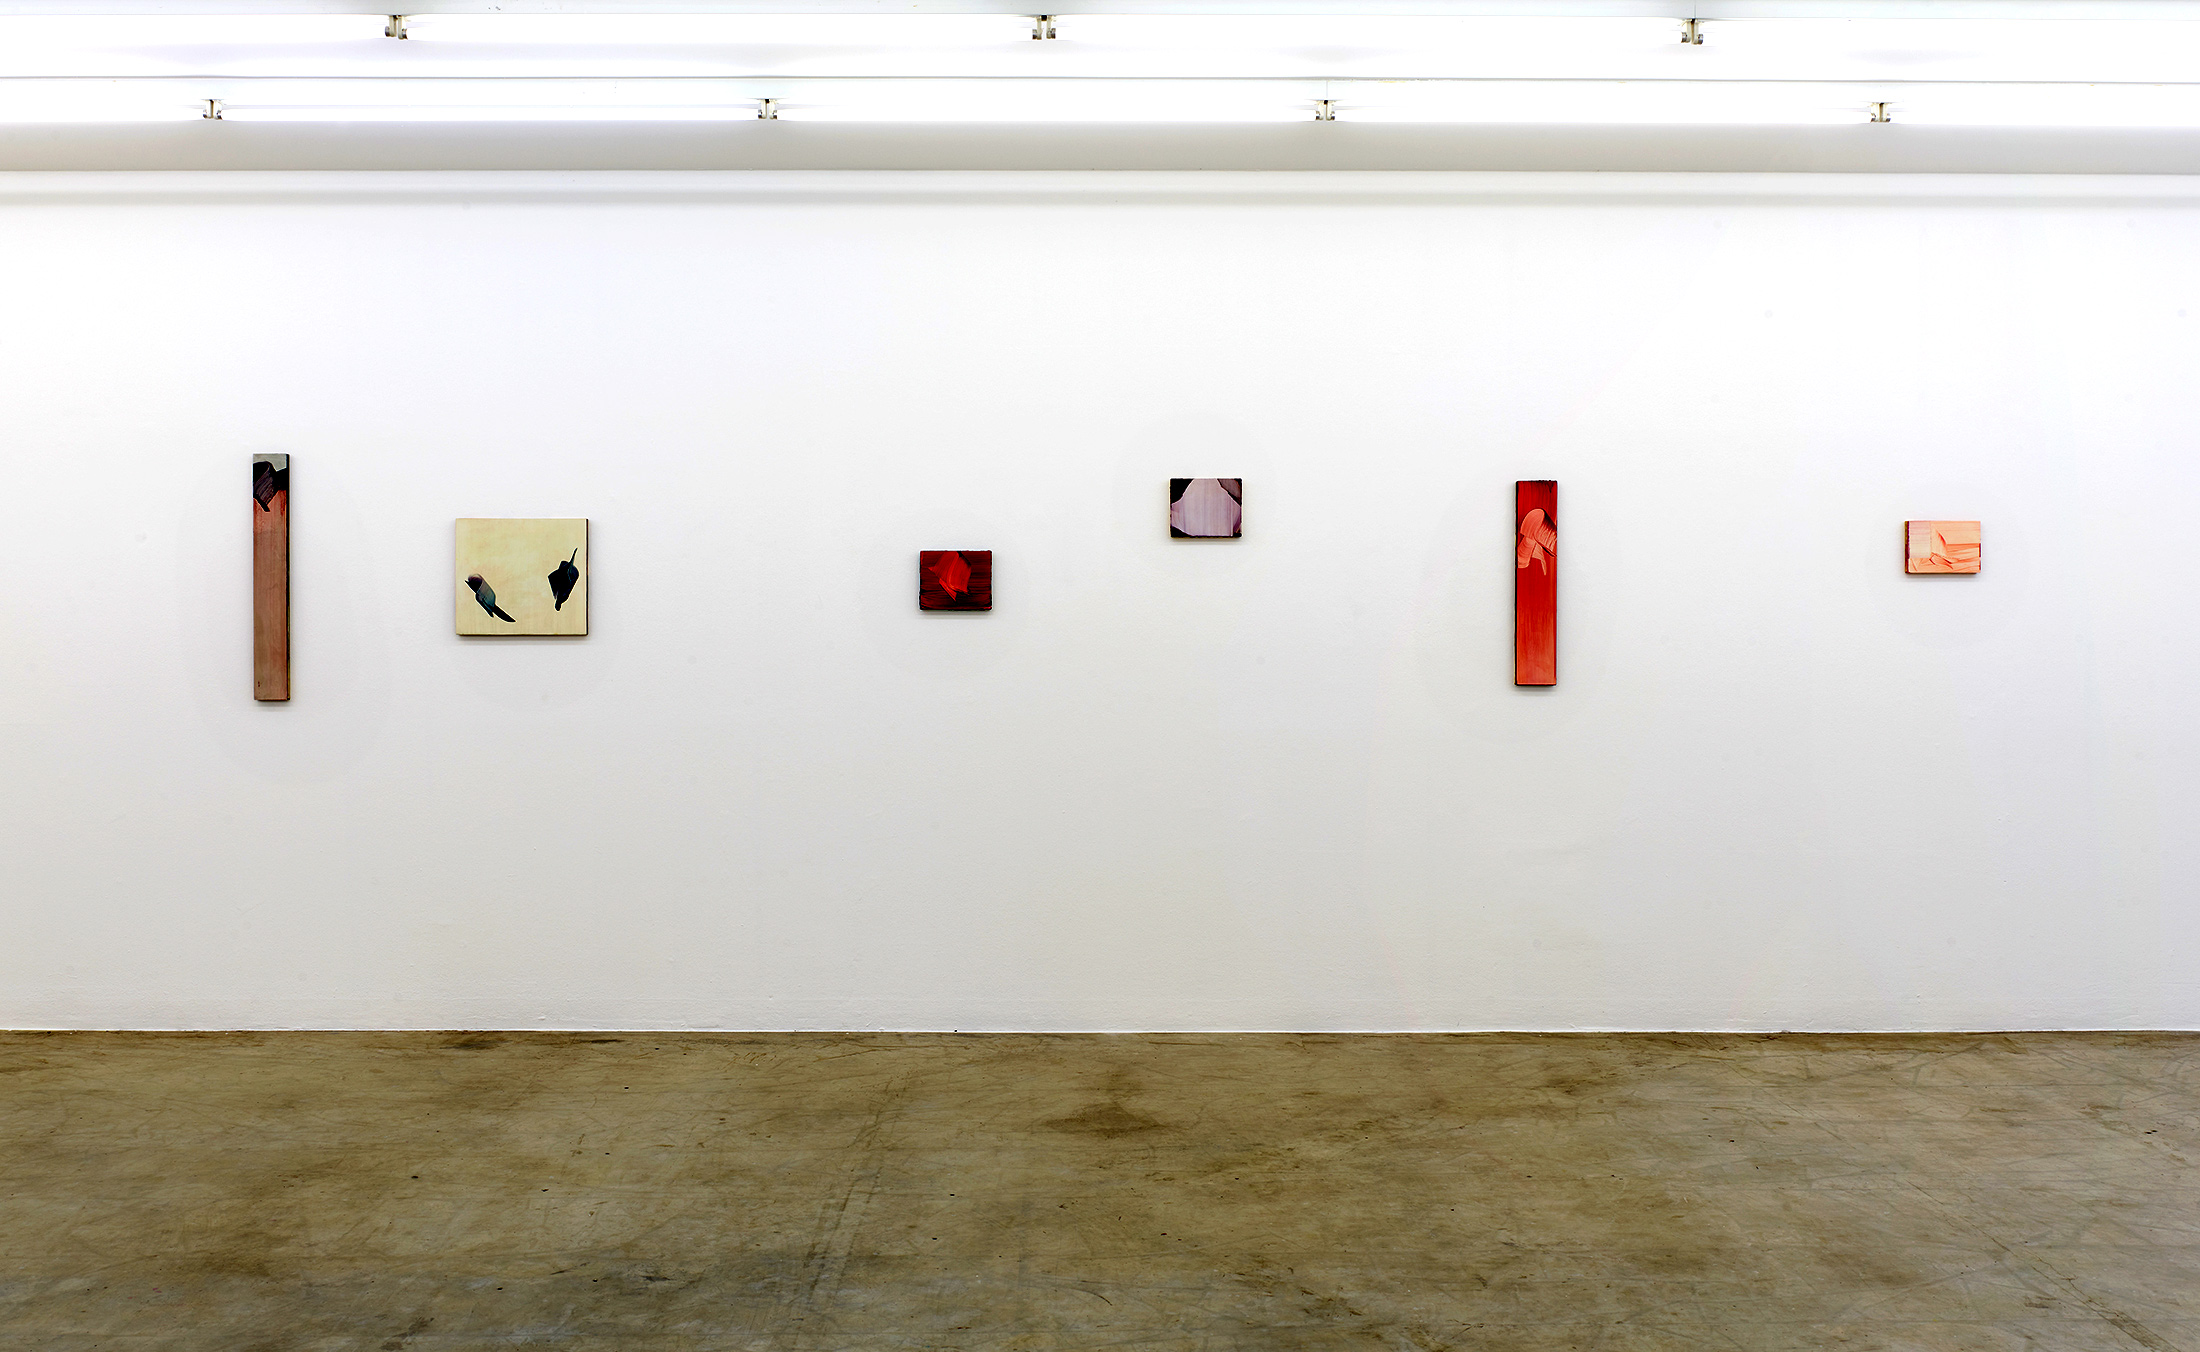 markus saile, exhibition view, viewing room